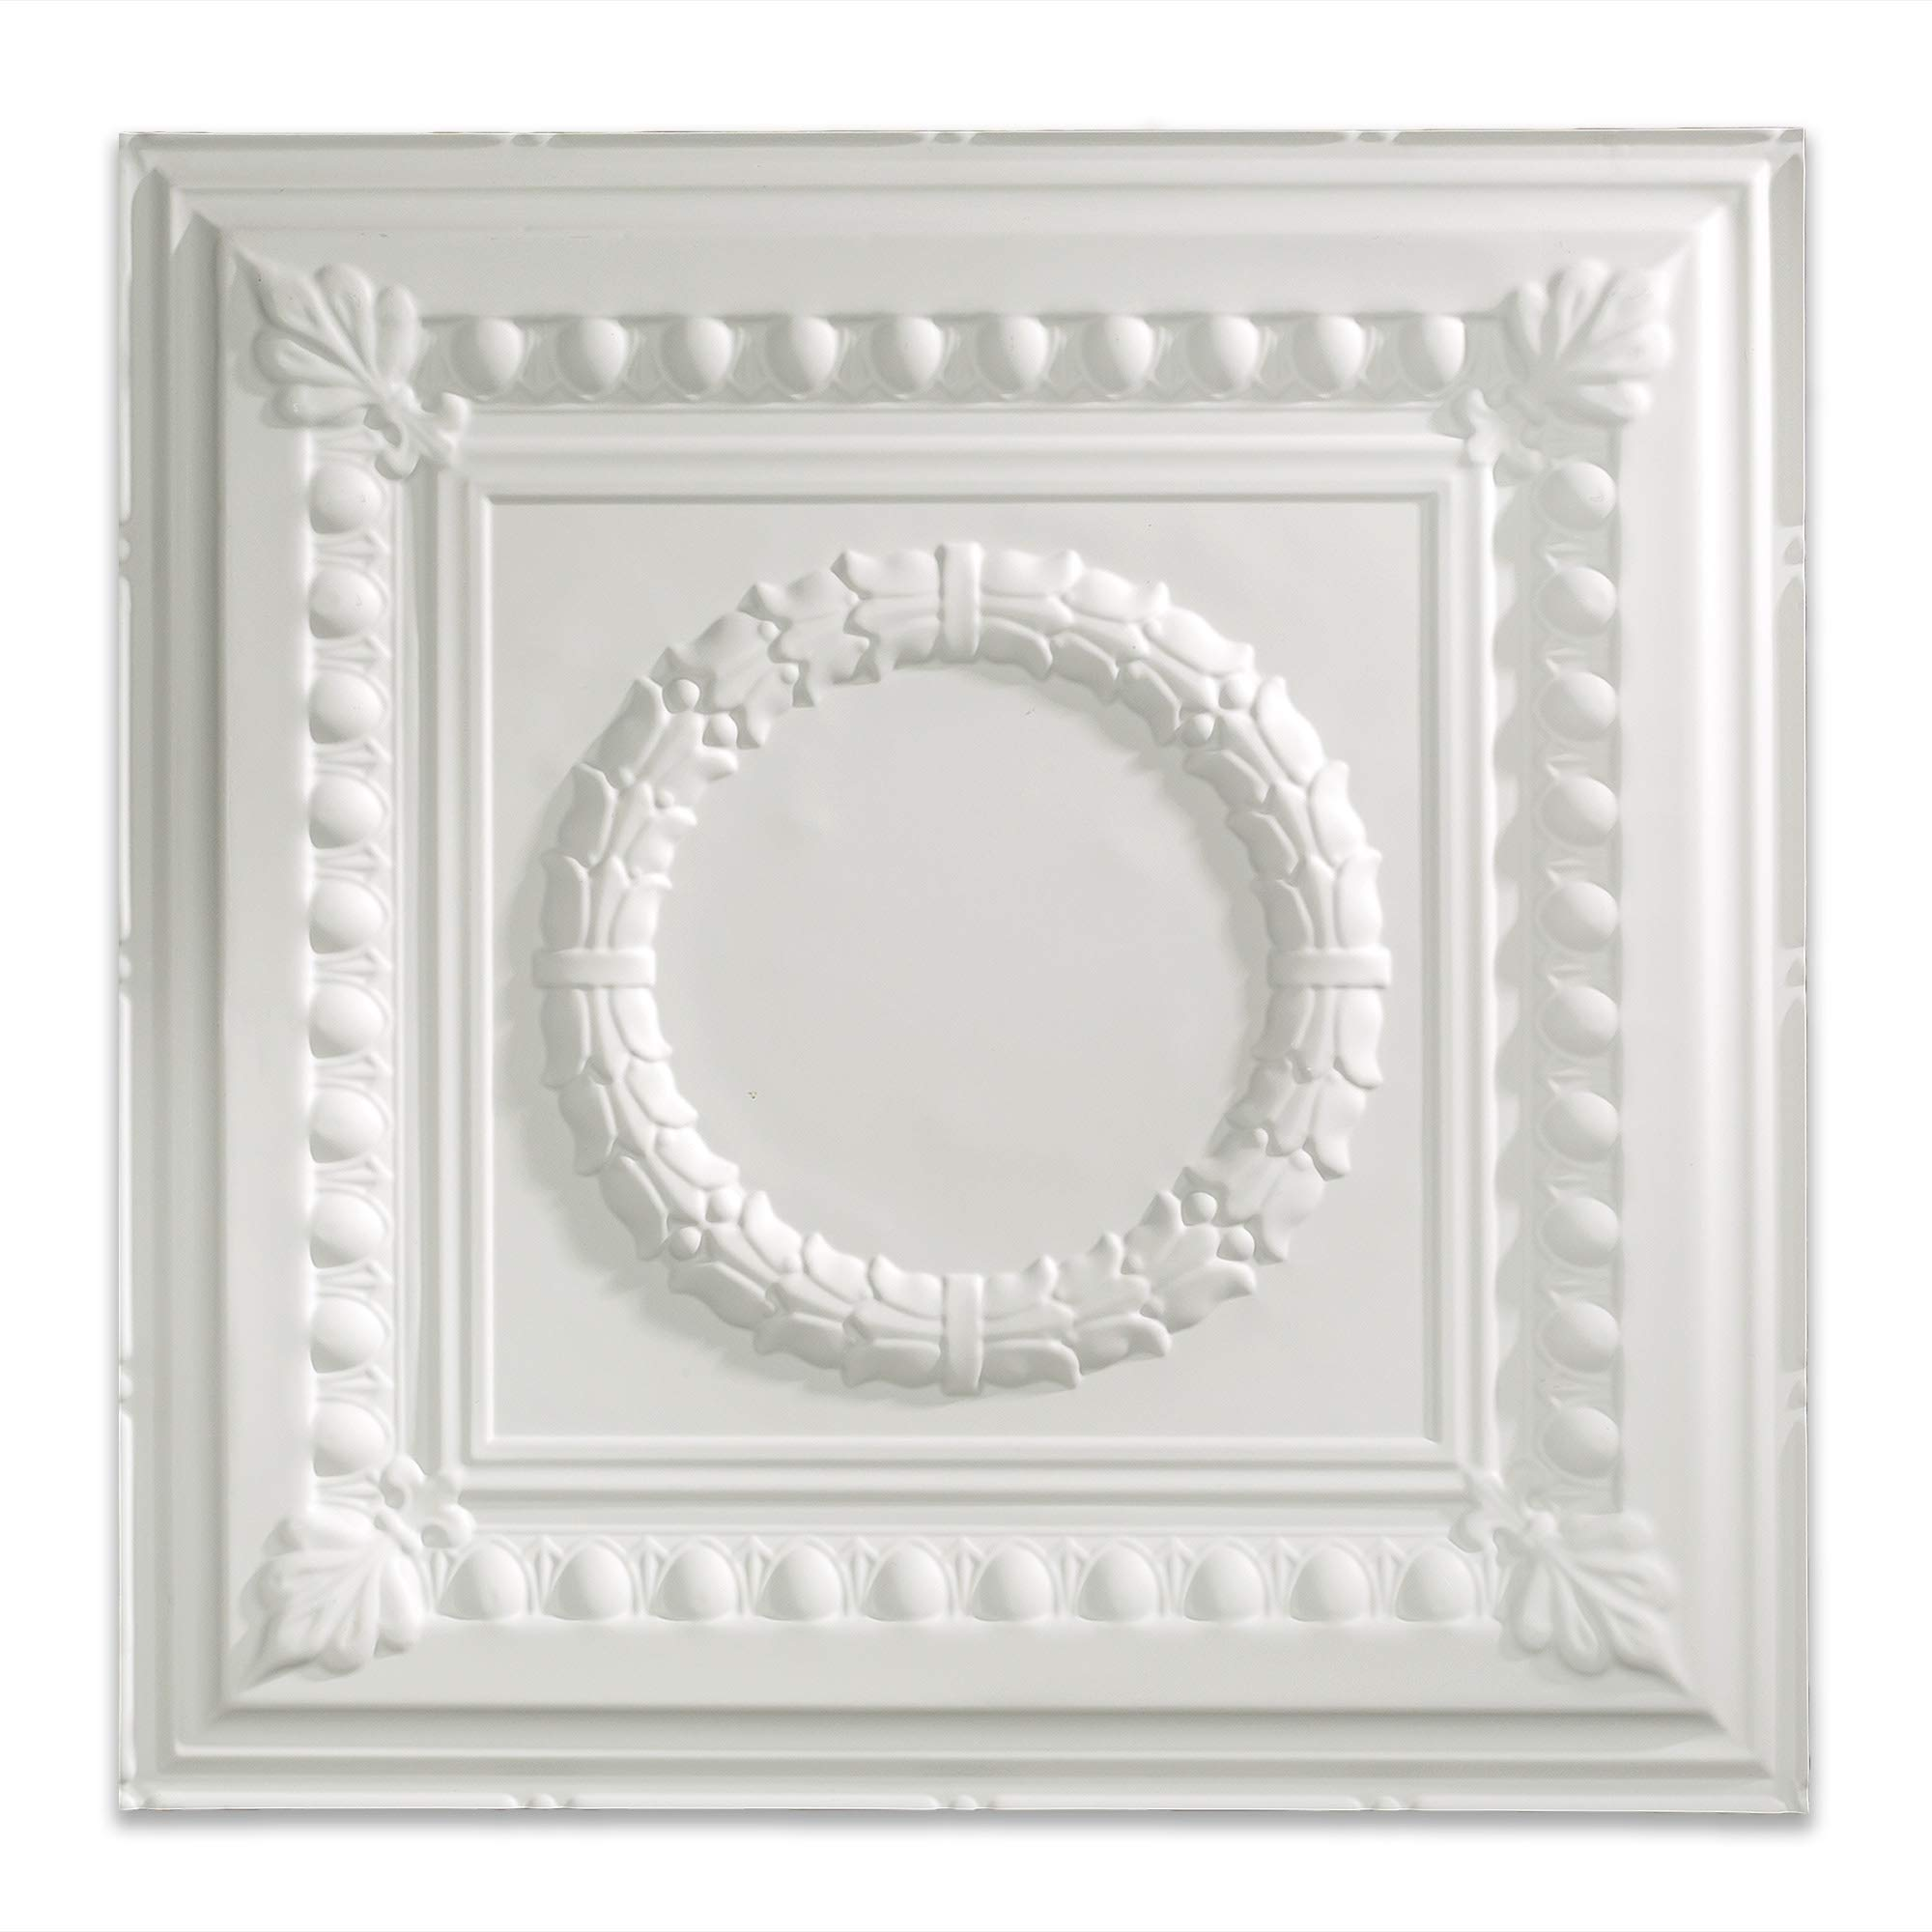 Fasade Easy Installation Rosette Gloss White Lay In Ceiling Tile / Ceiling Panel (2' x 2' Tile)